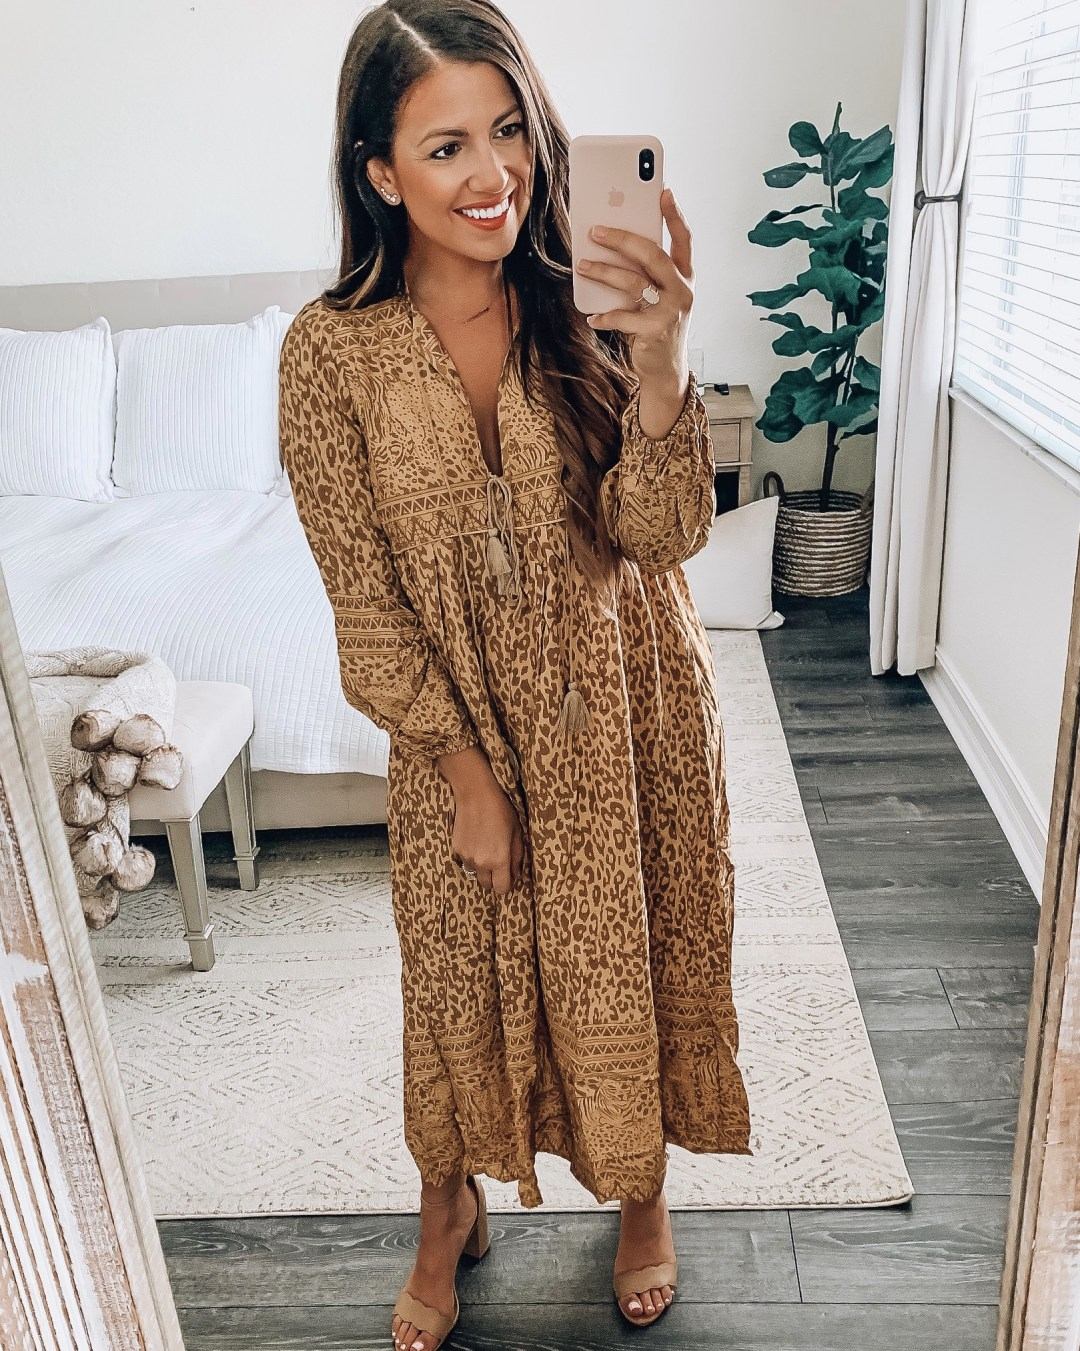 Amazon Fashion boho dress, Spell & the Gypsy dress dupe